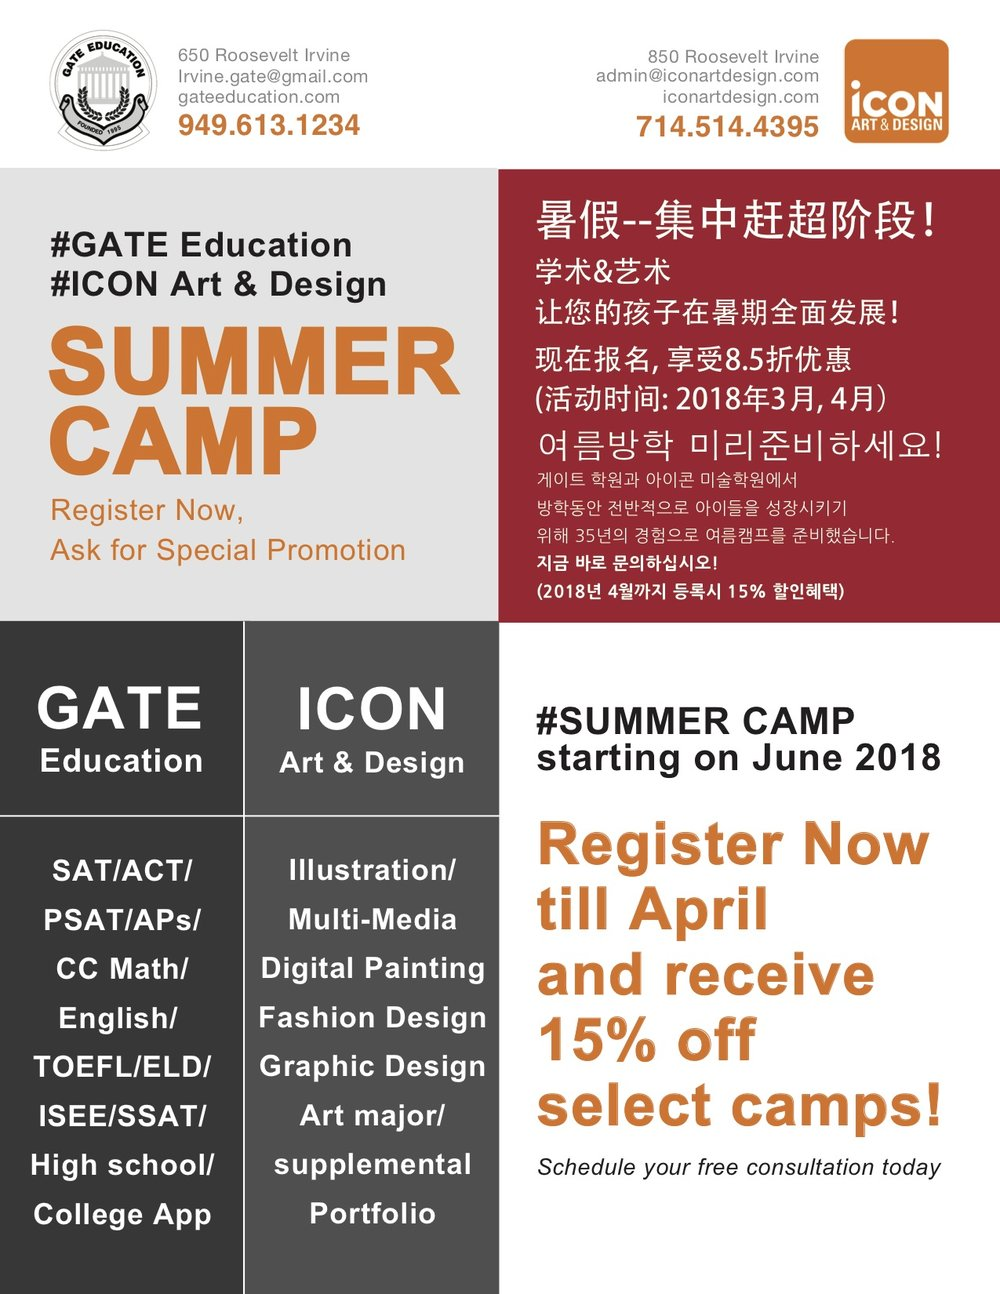 summercamp_gate_icon.jpg